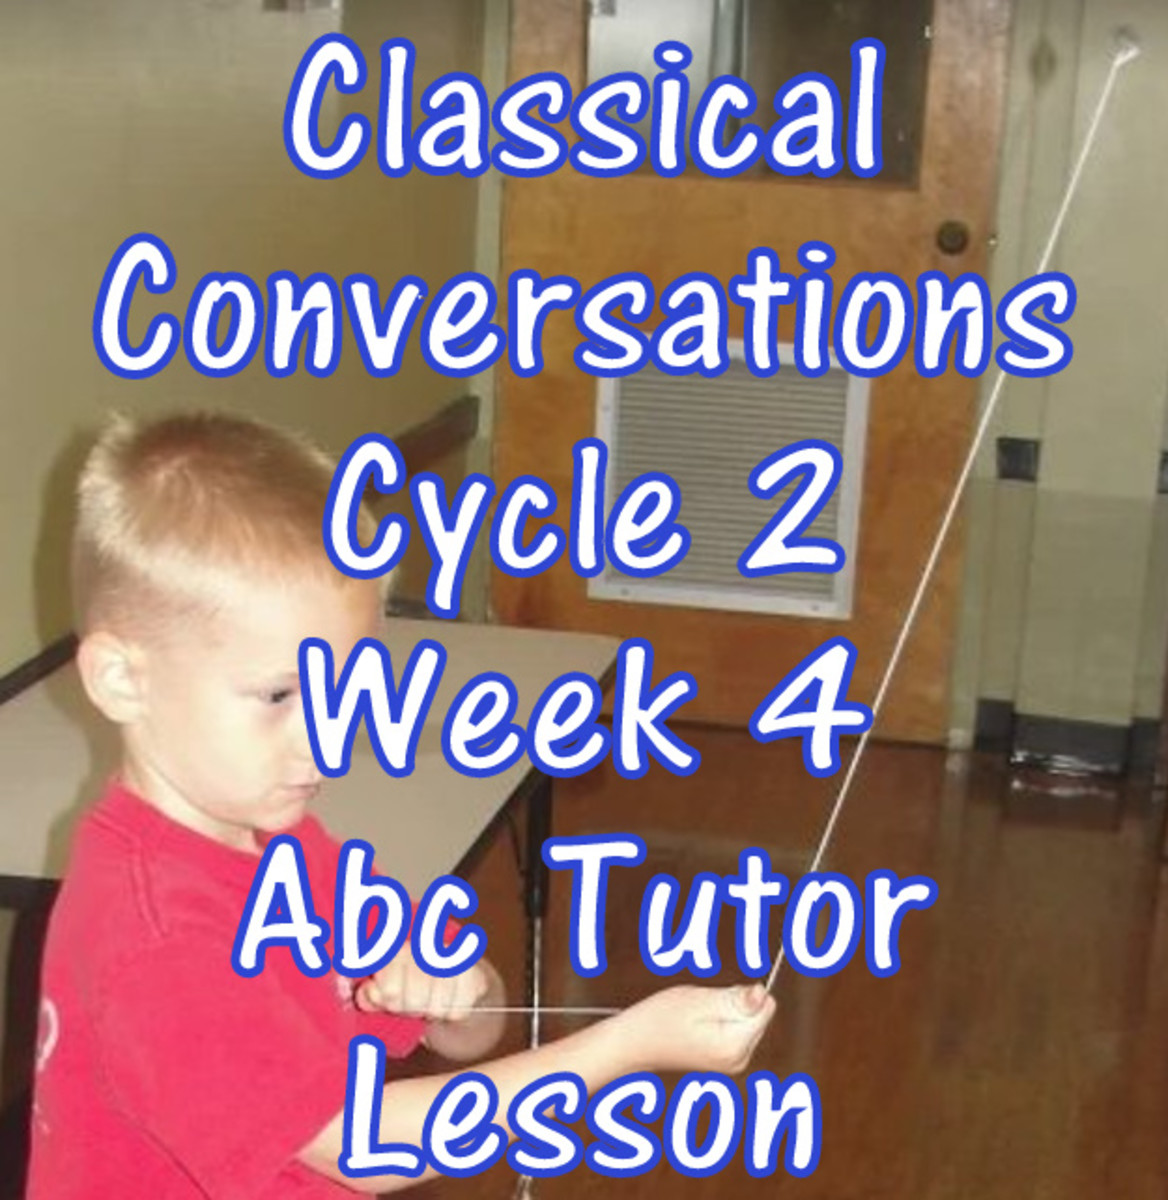 CC Cycle 2 Week 4 Lesson for Abecedarian Tutors